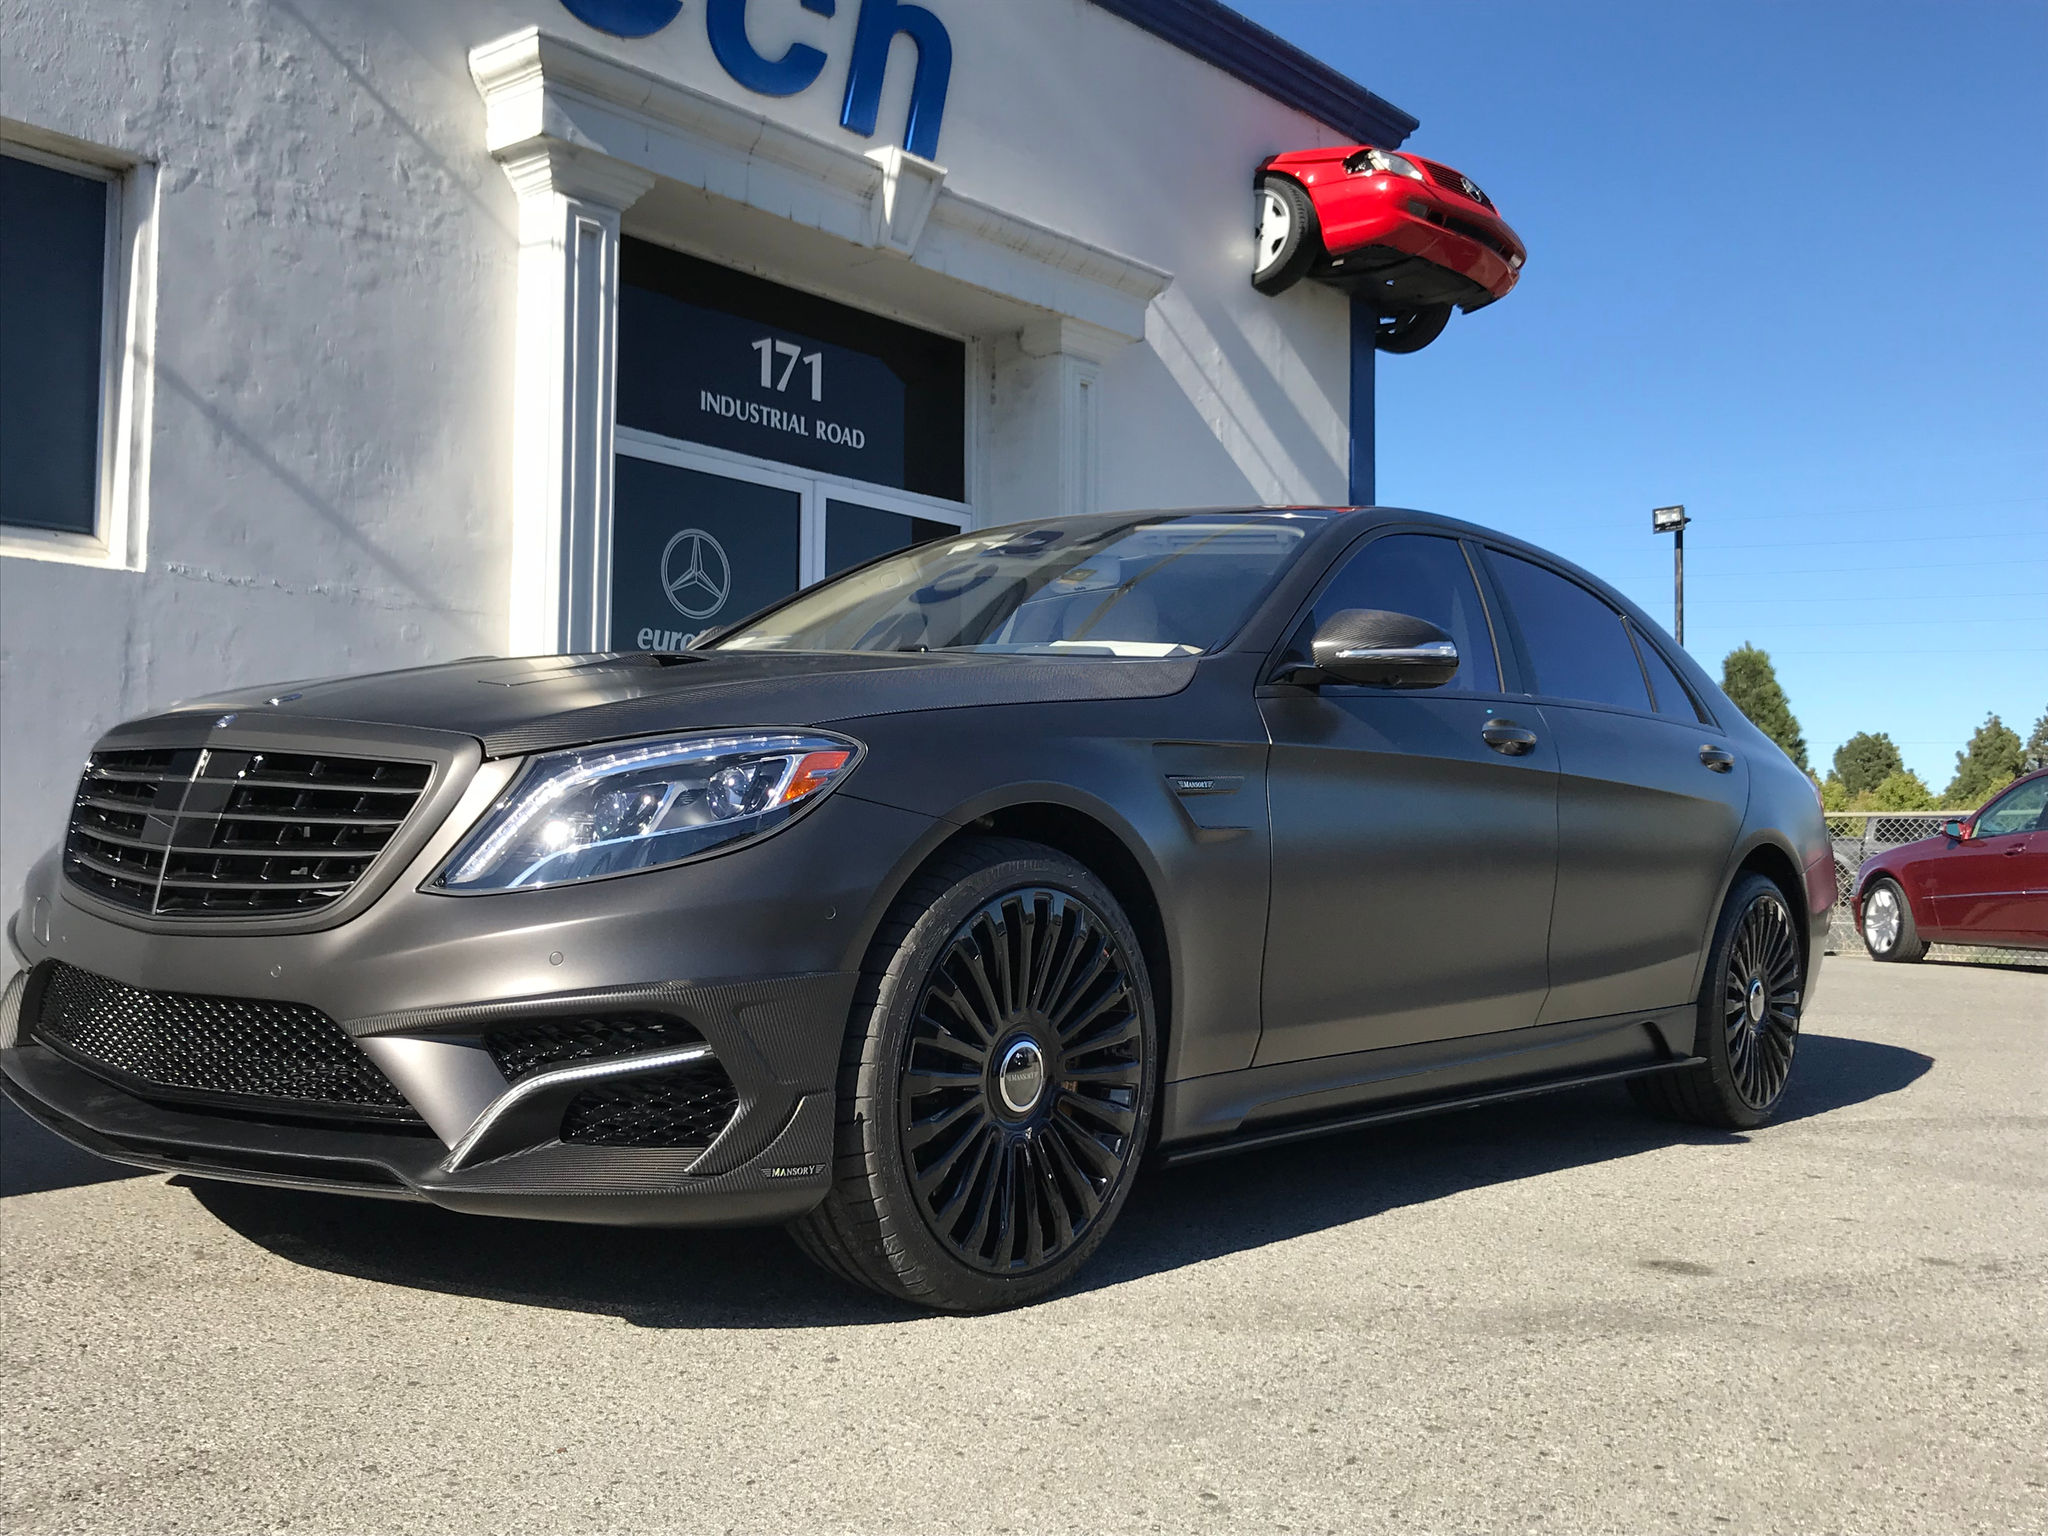 Mercedes Benz Service And Repair Shop In San Francisco Bay Area Lubricants